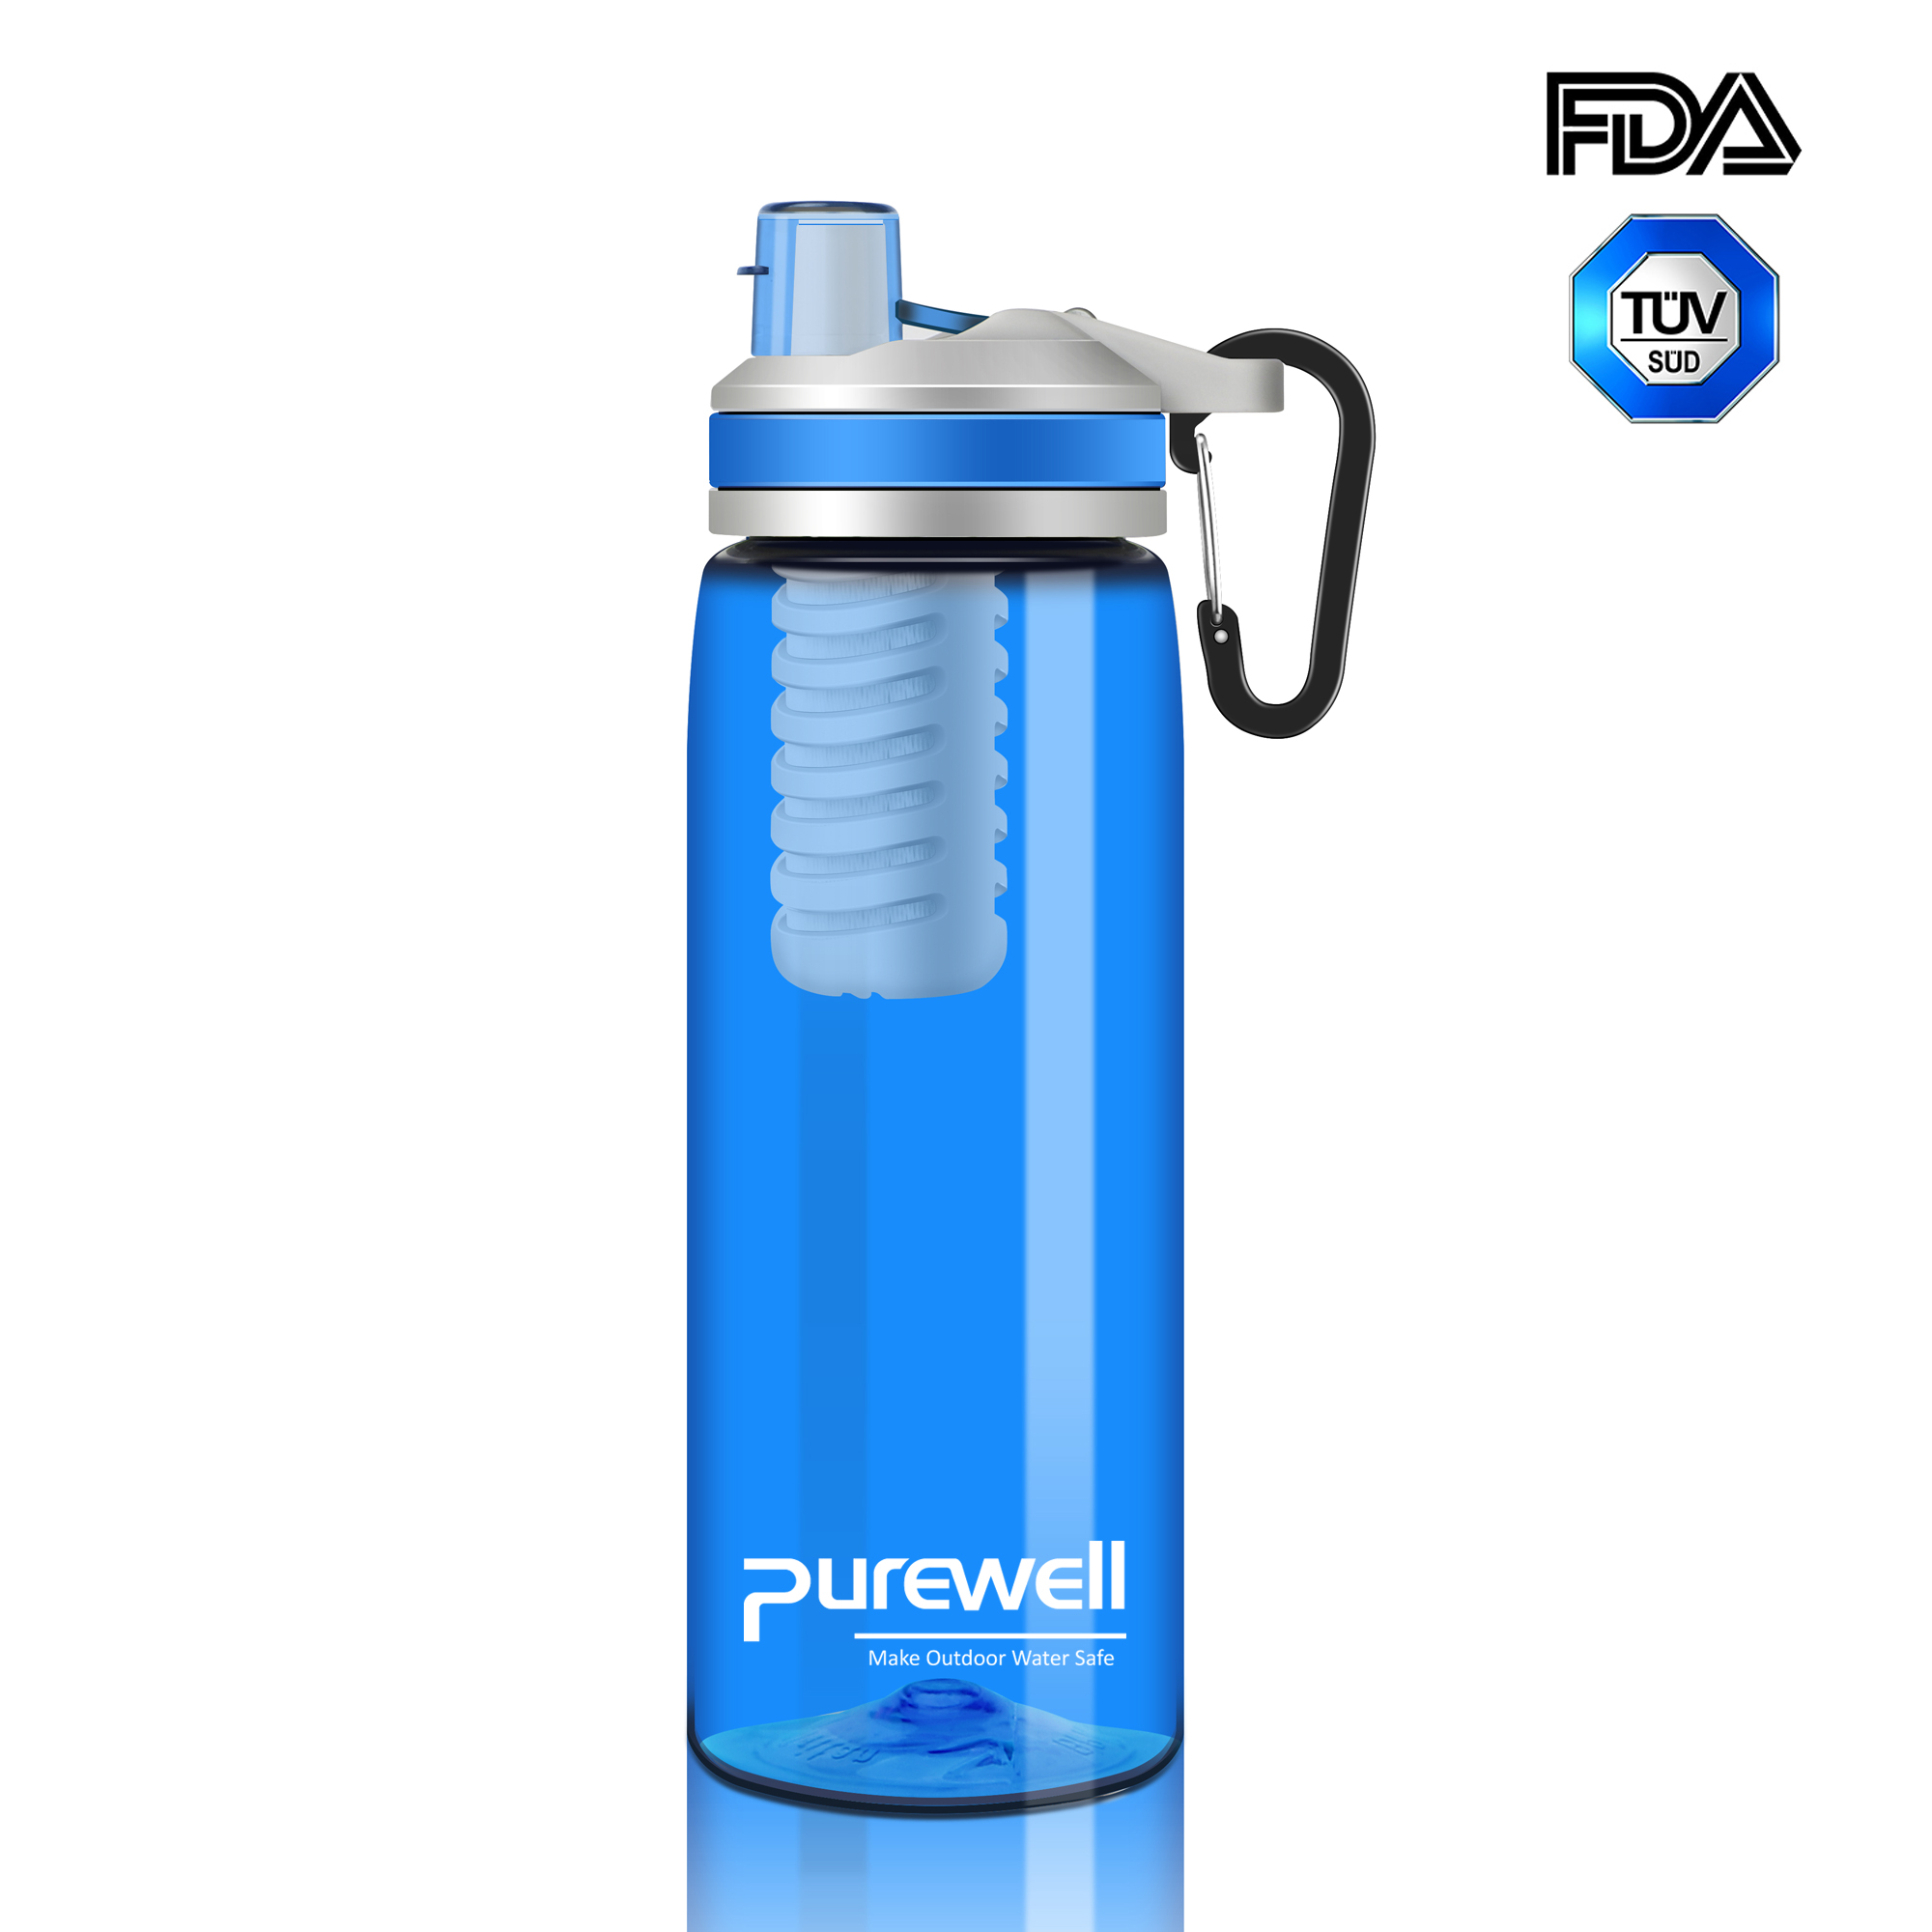 Purewell Array image1